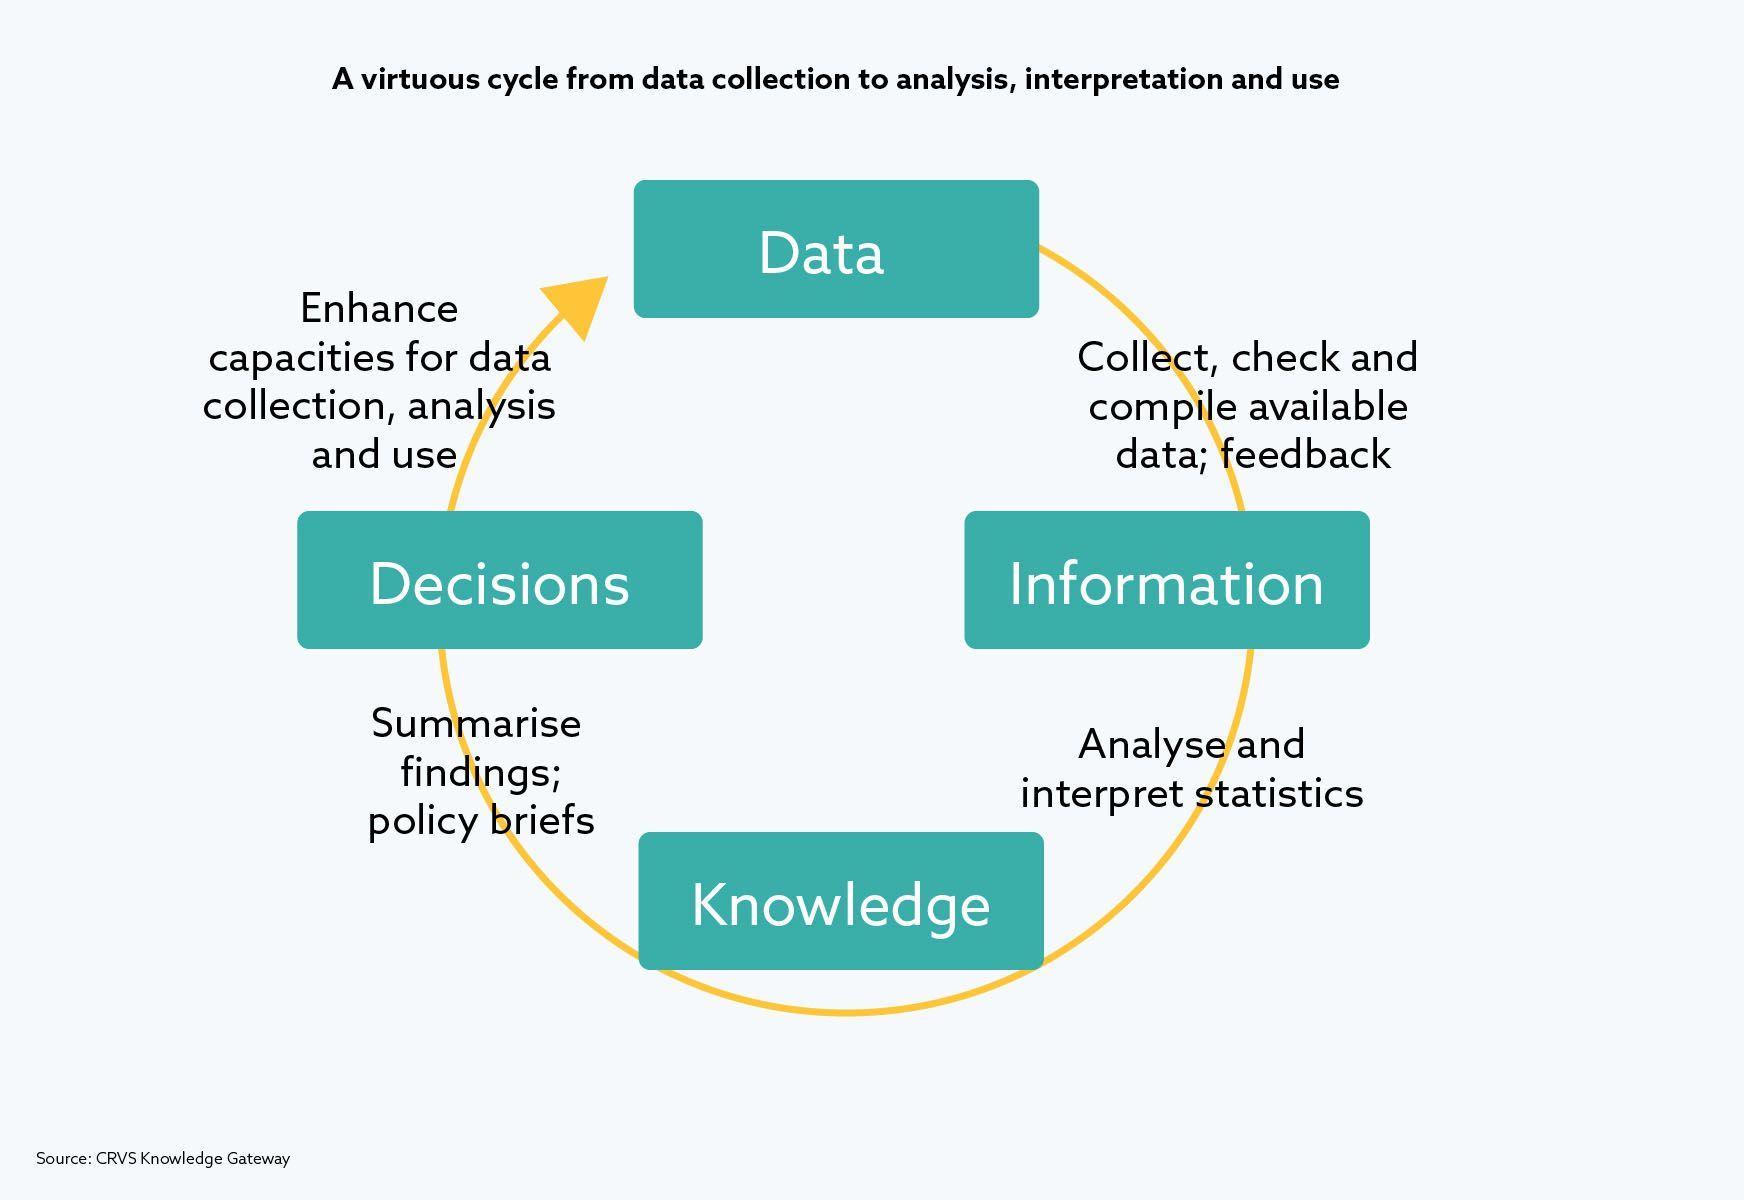 A virtuous cycle from data collection to analysis, interpretation and use